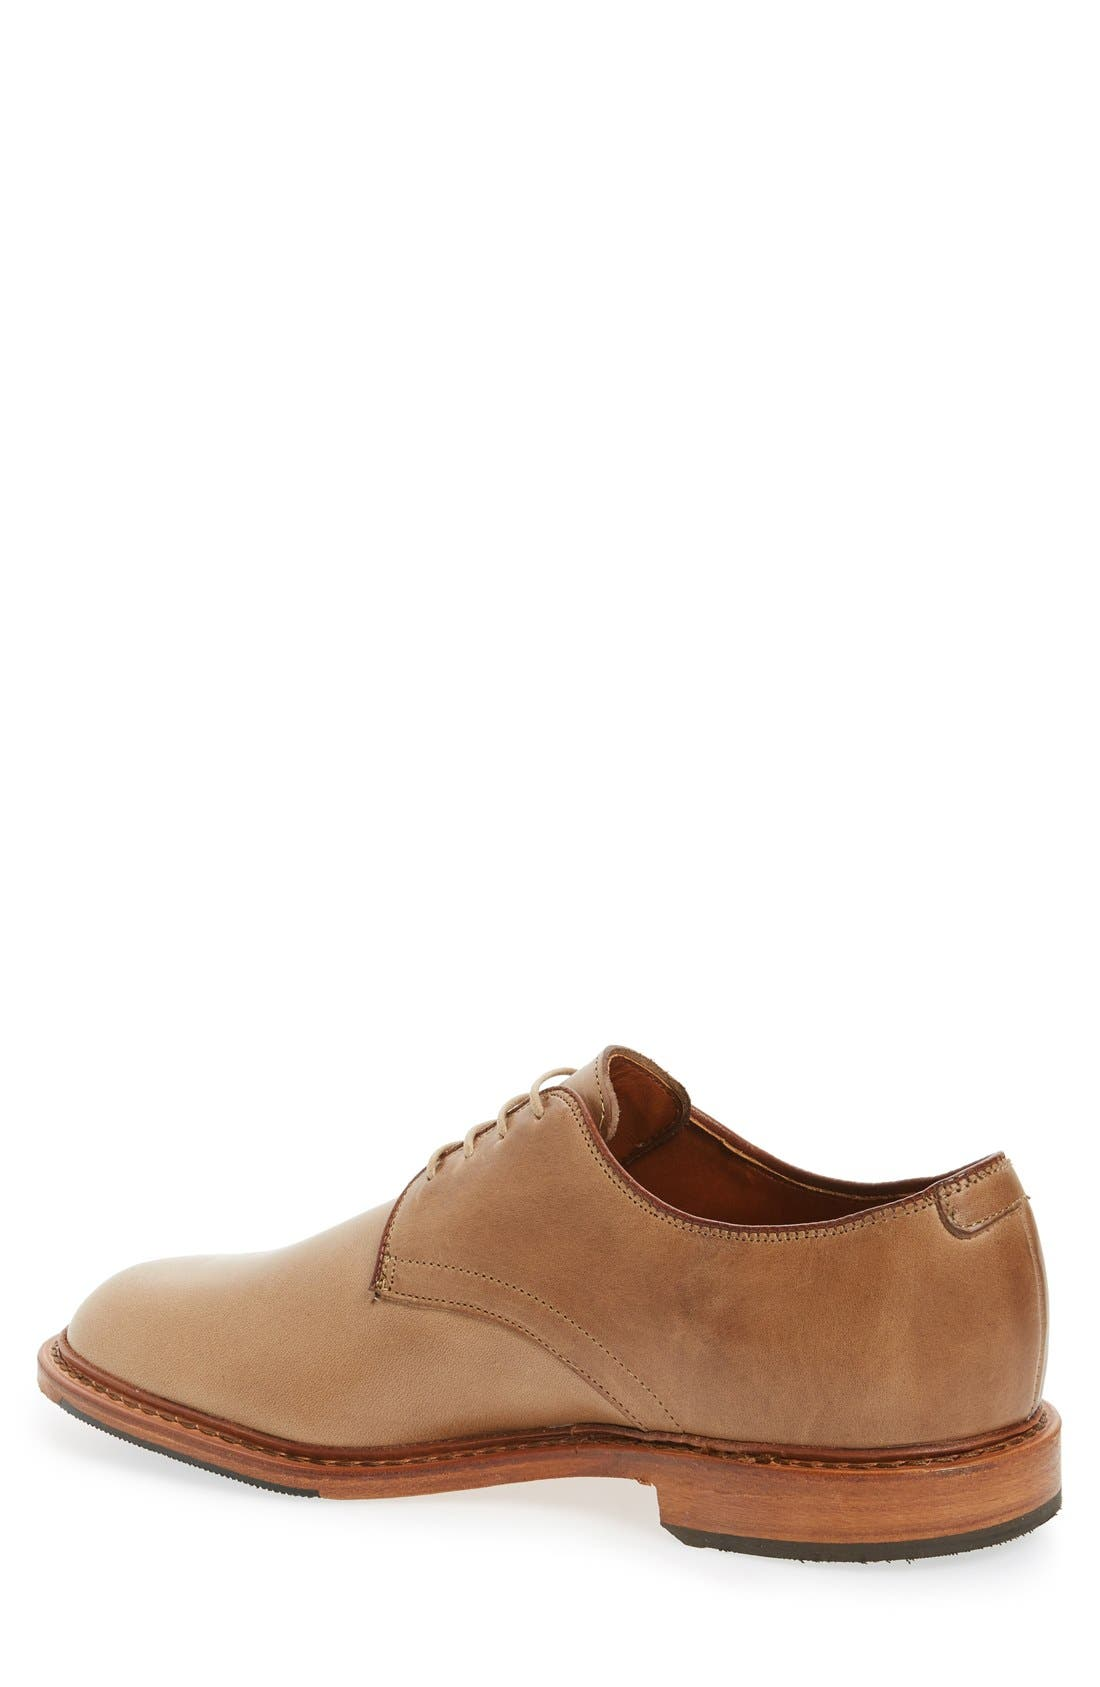 Academy Plain Toe Derby,                             Alternate thumbnail 2, color,                             Natural Leather